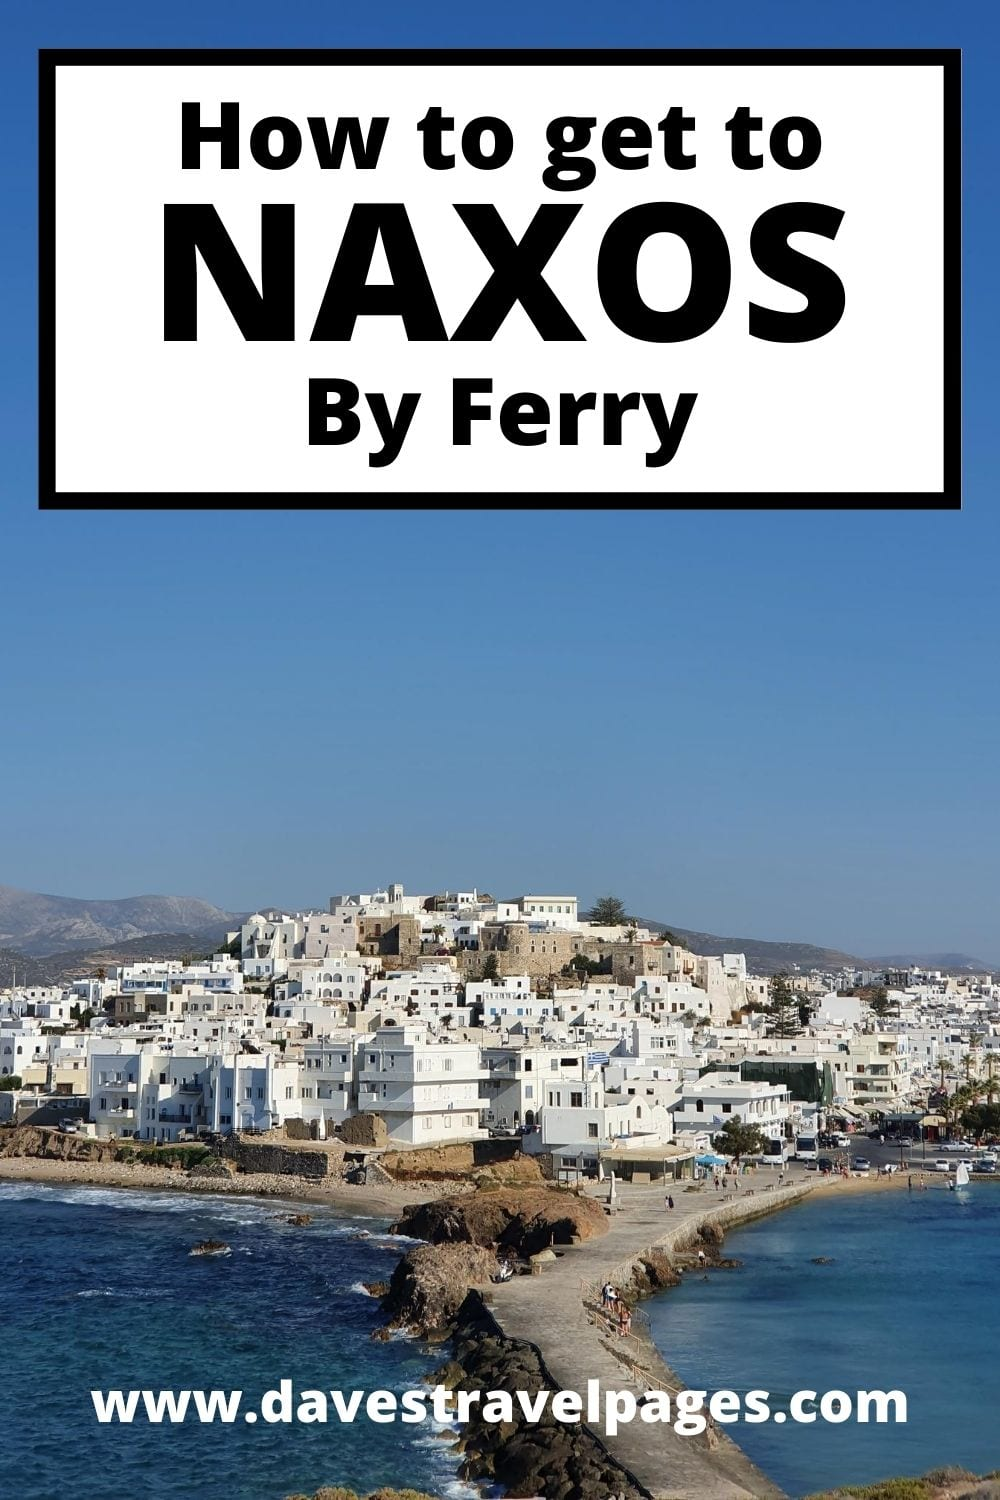 How to get from Athens to Naxos by ferry the easy way